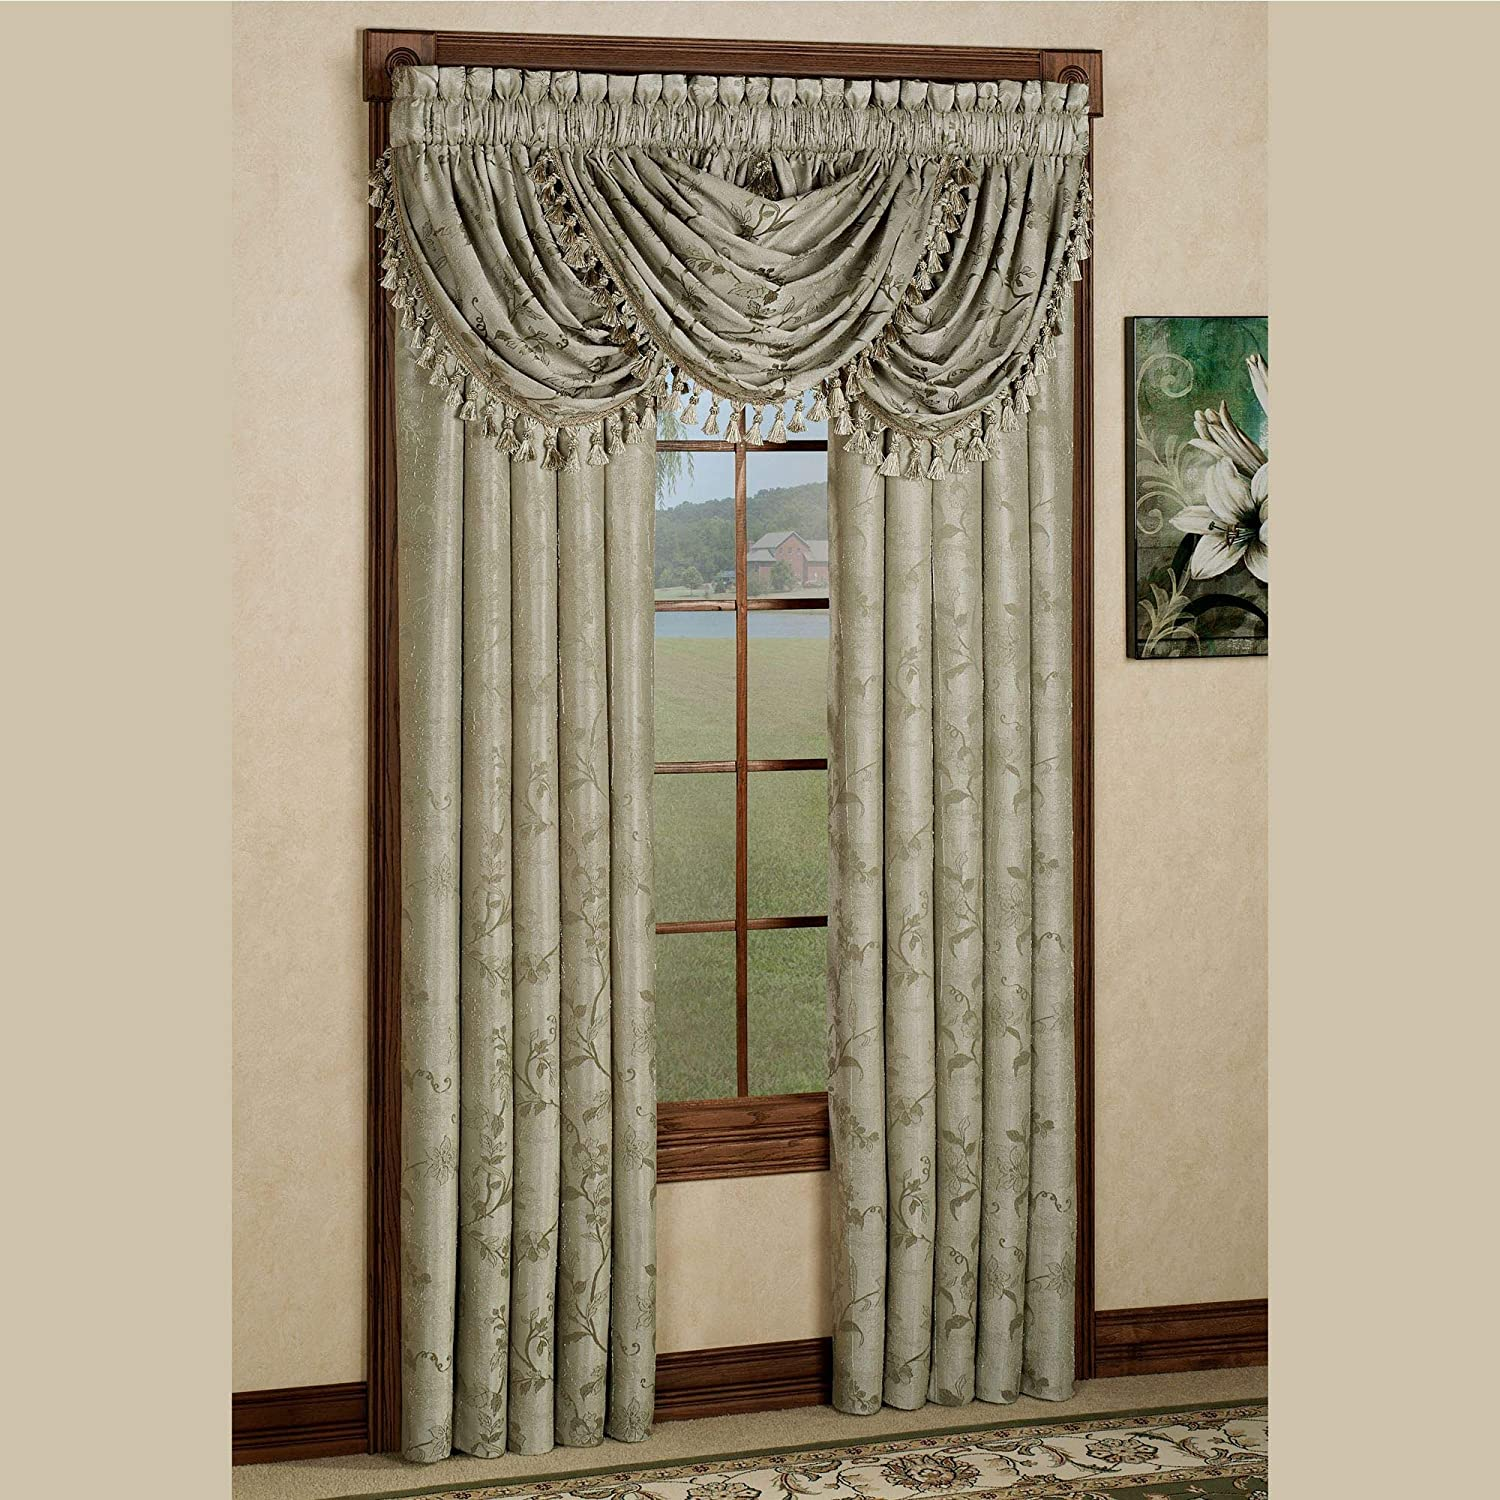 Lorraine Home Fashions Of Chin Floral Lustre Tailored Curtain Panel